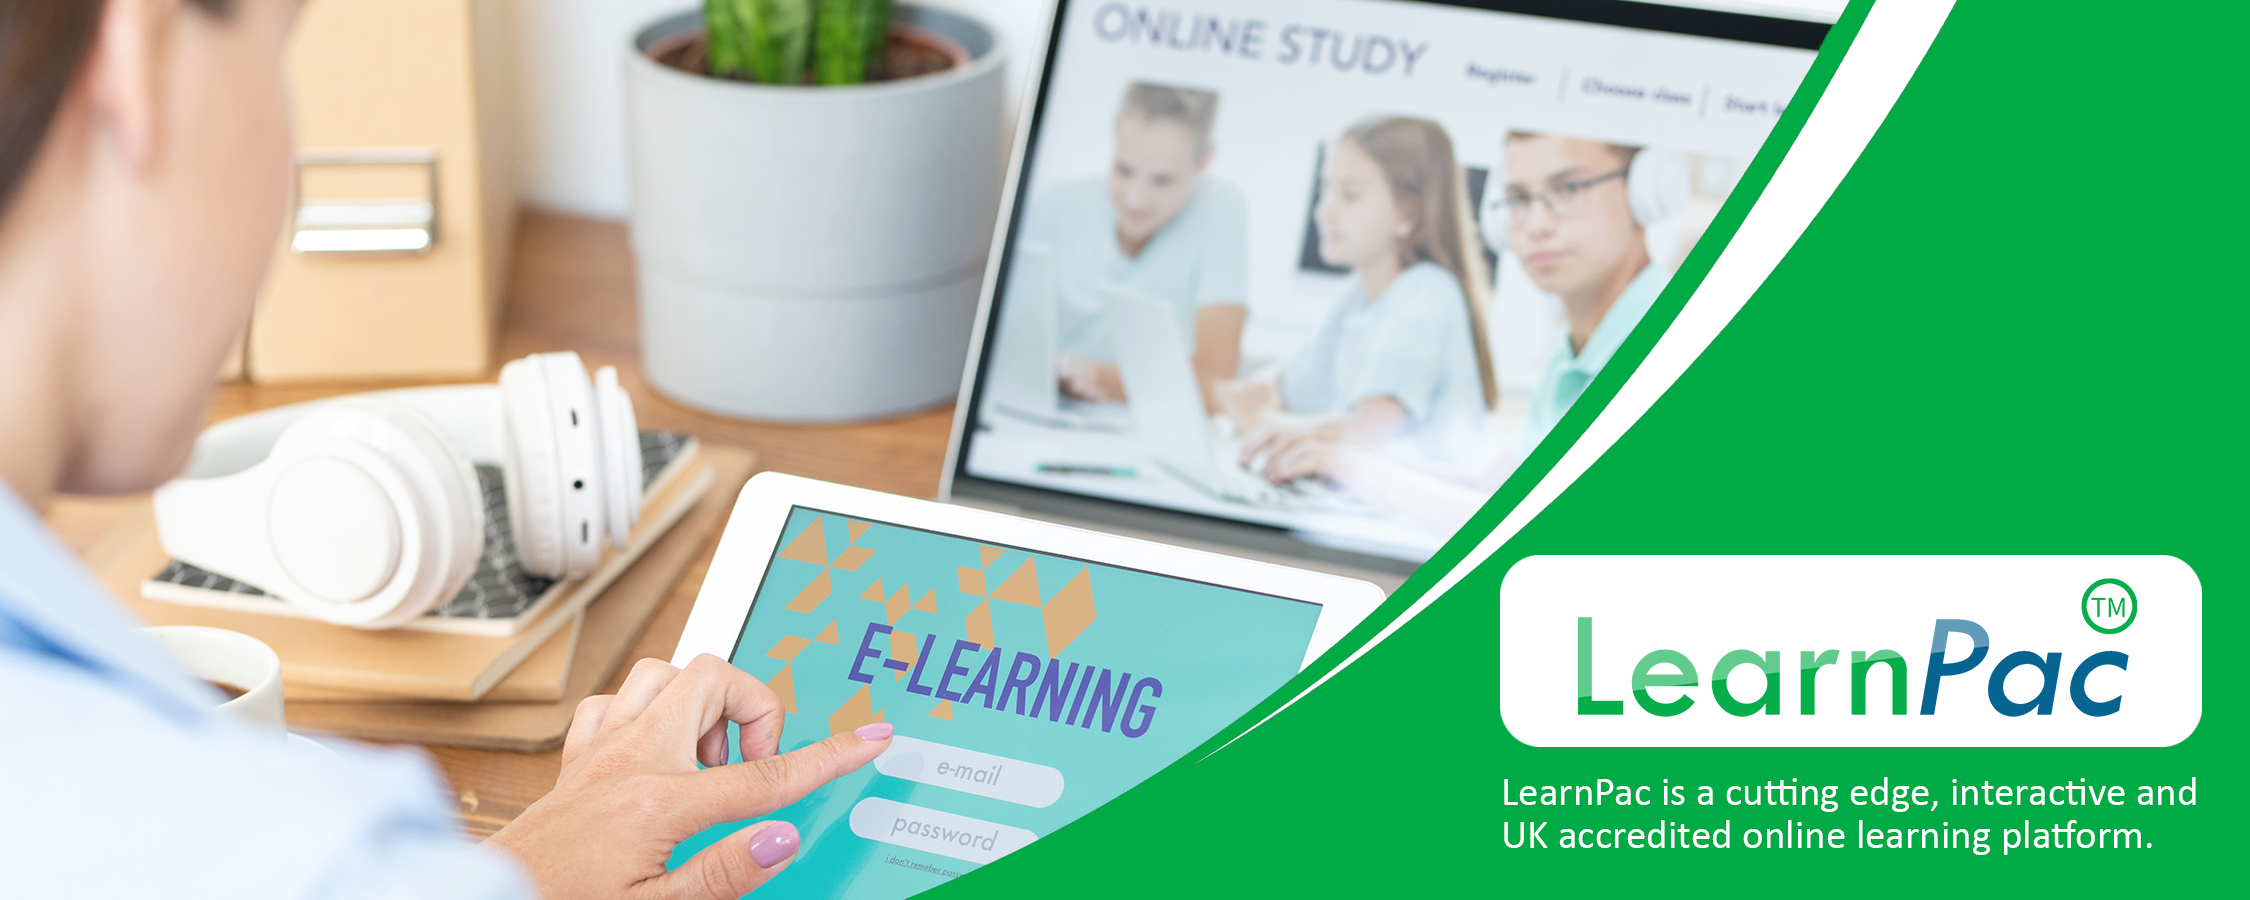 Safe Handling and Administration of Medical Gases - Online Learning Courses - E-Learning Courses - LearnPac Systems UK -